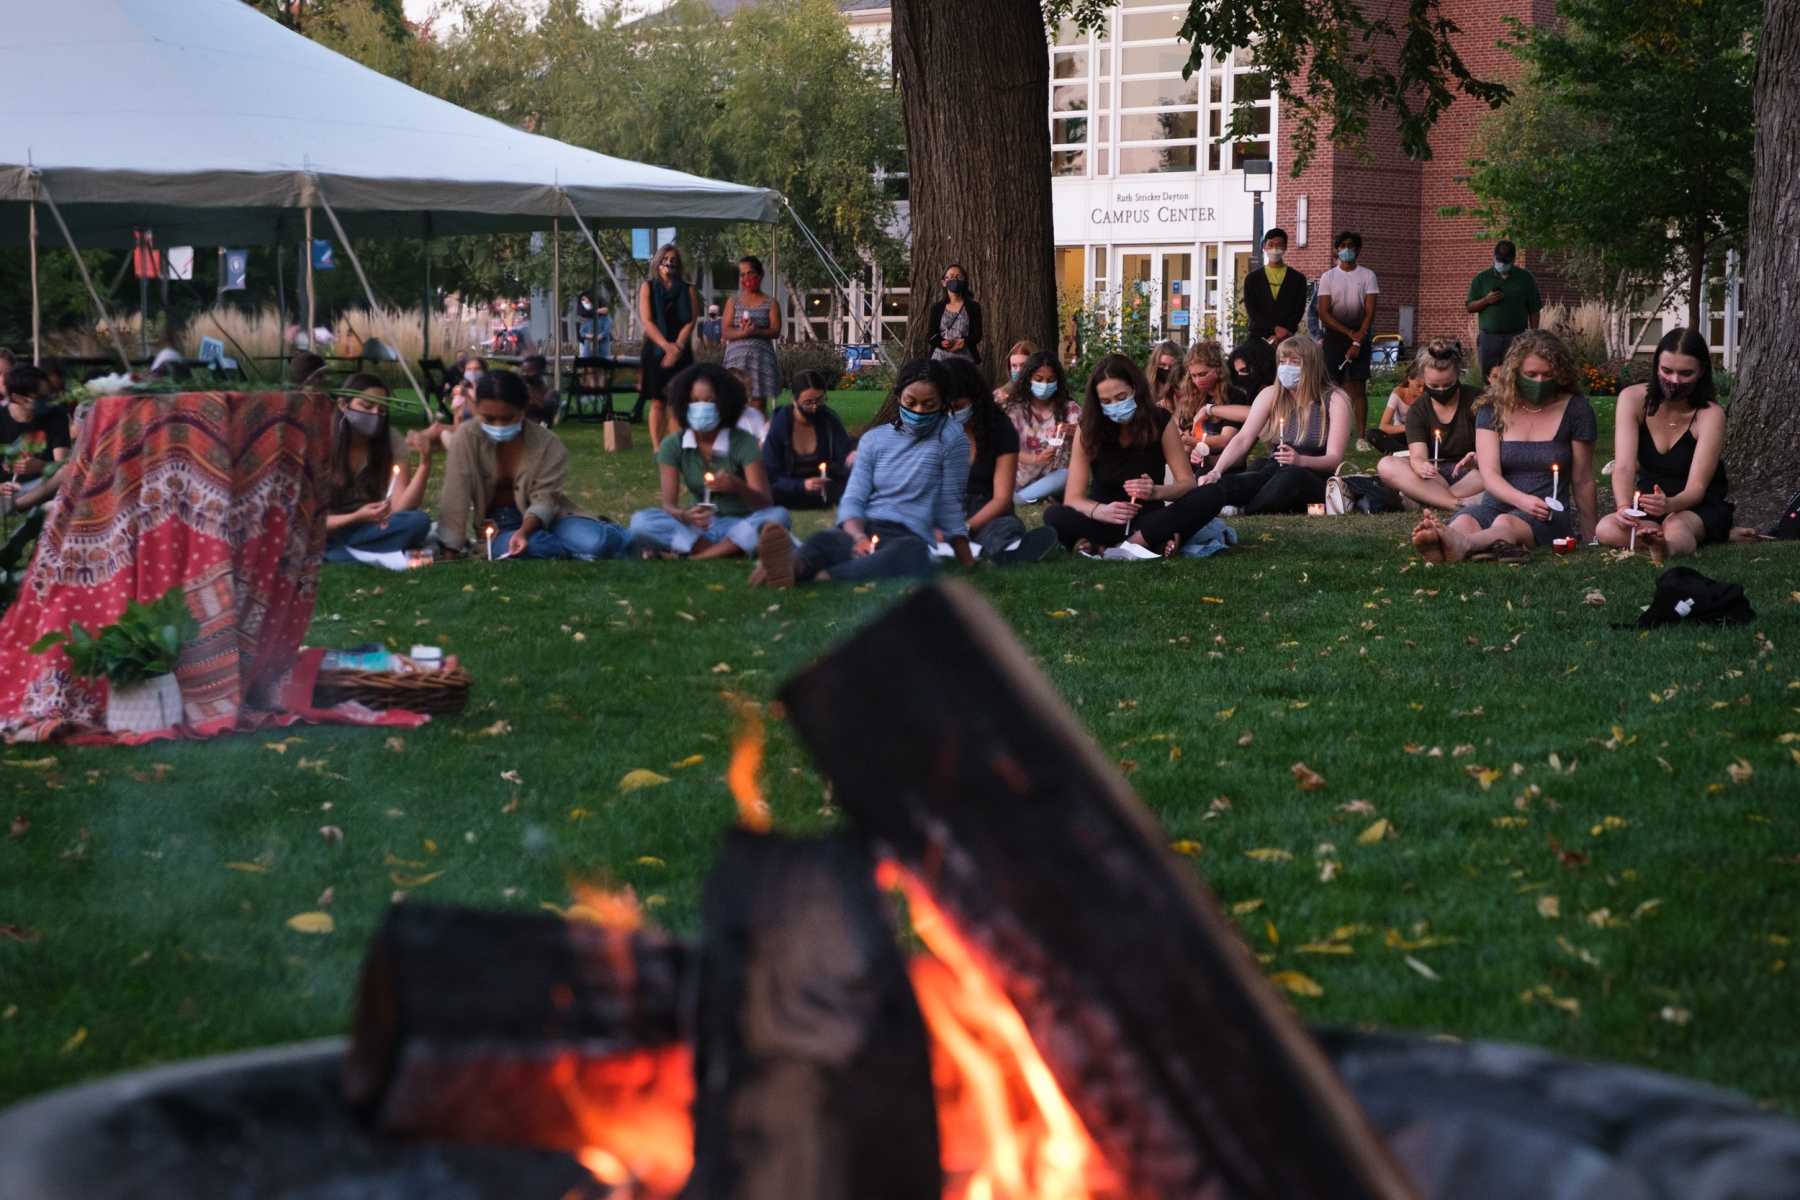 Students at Macalester College gather on the Great Lawn to hold a vigil for fellow student Kai Davis, who died by suicide the previous week, on September 25, 2020.